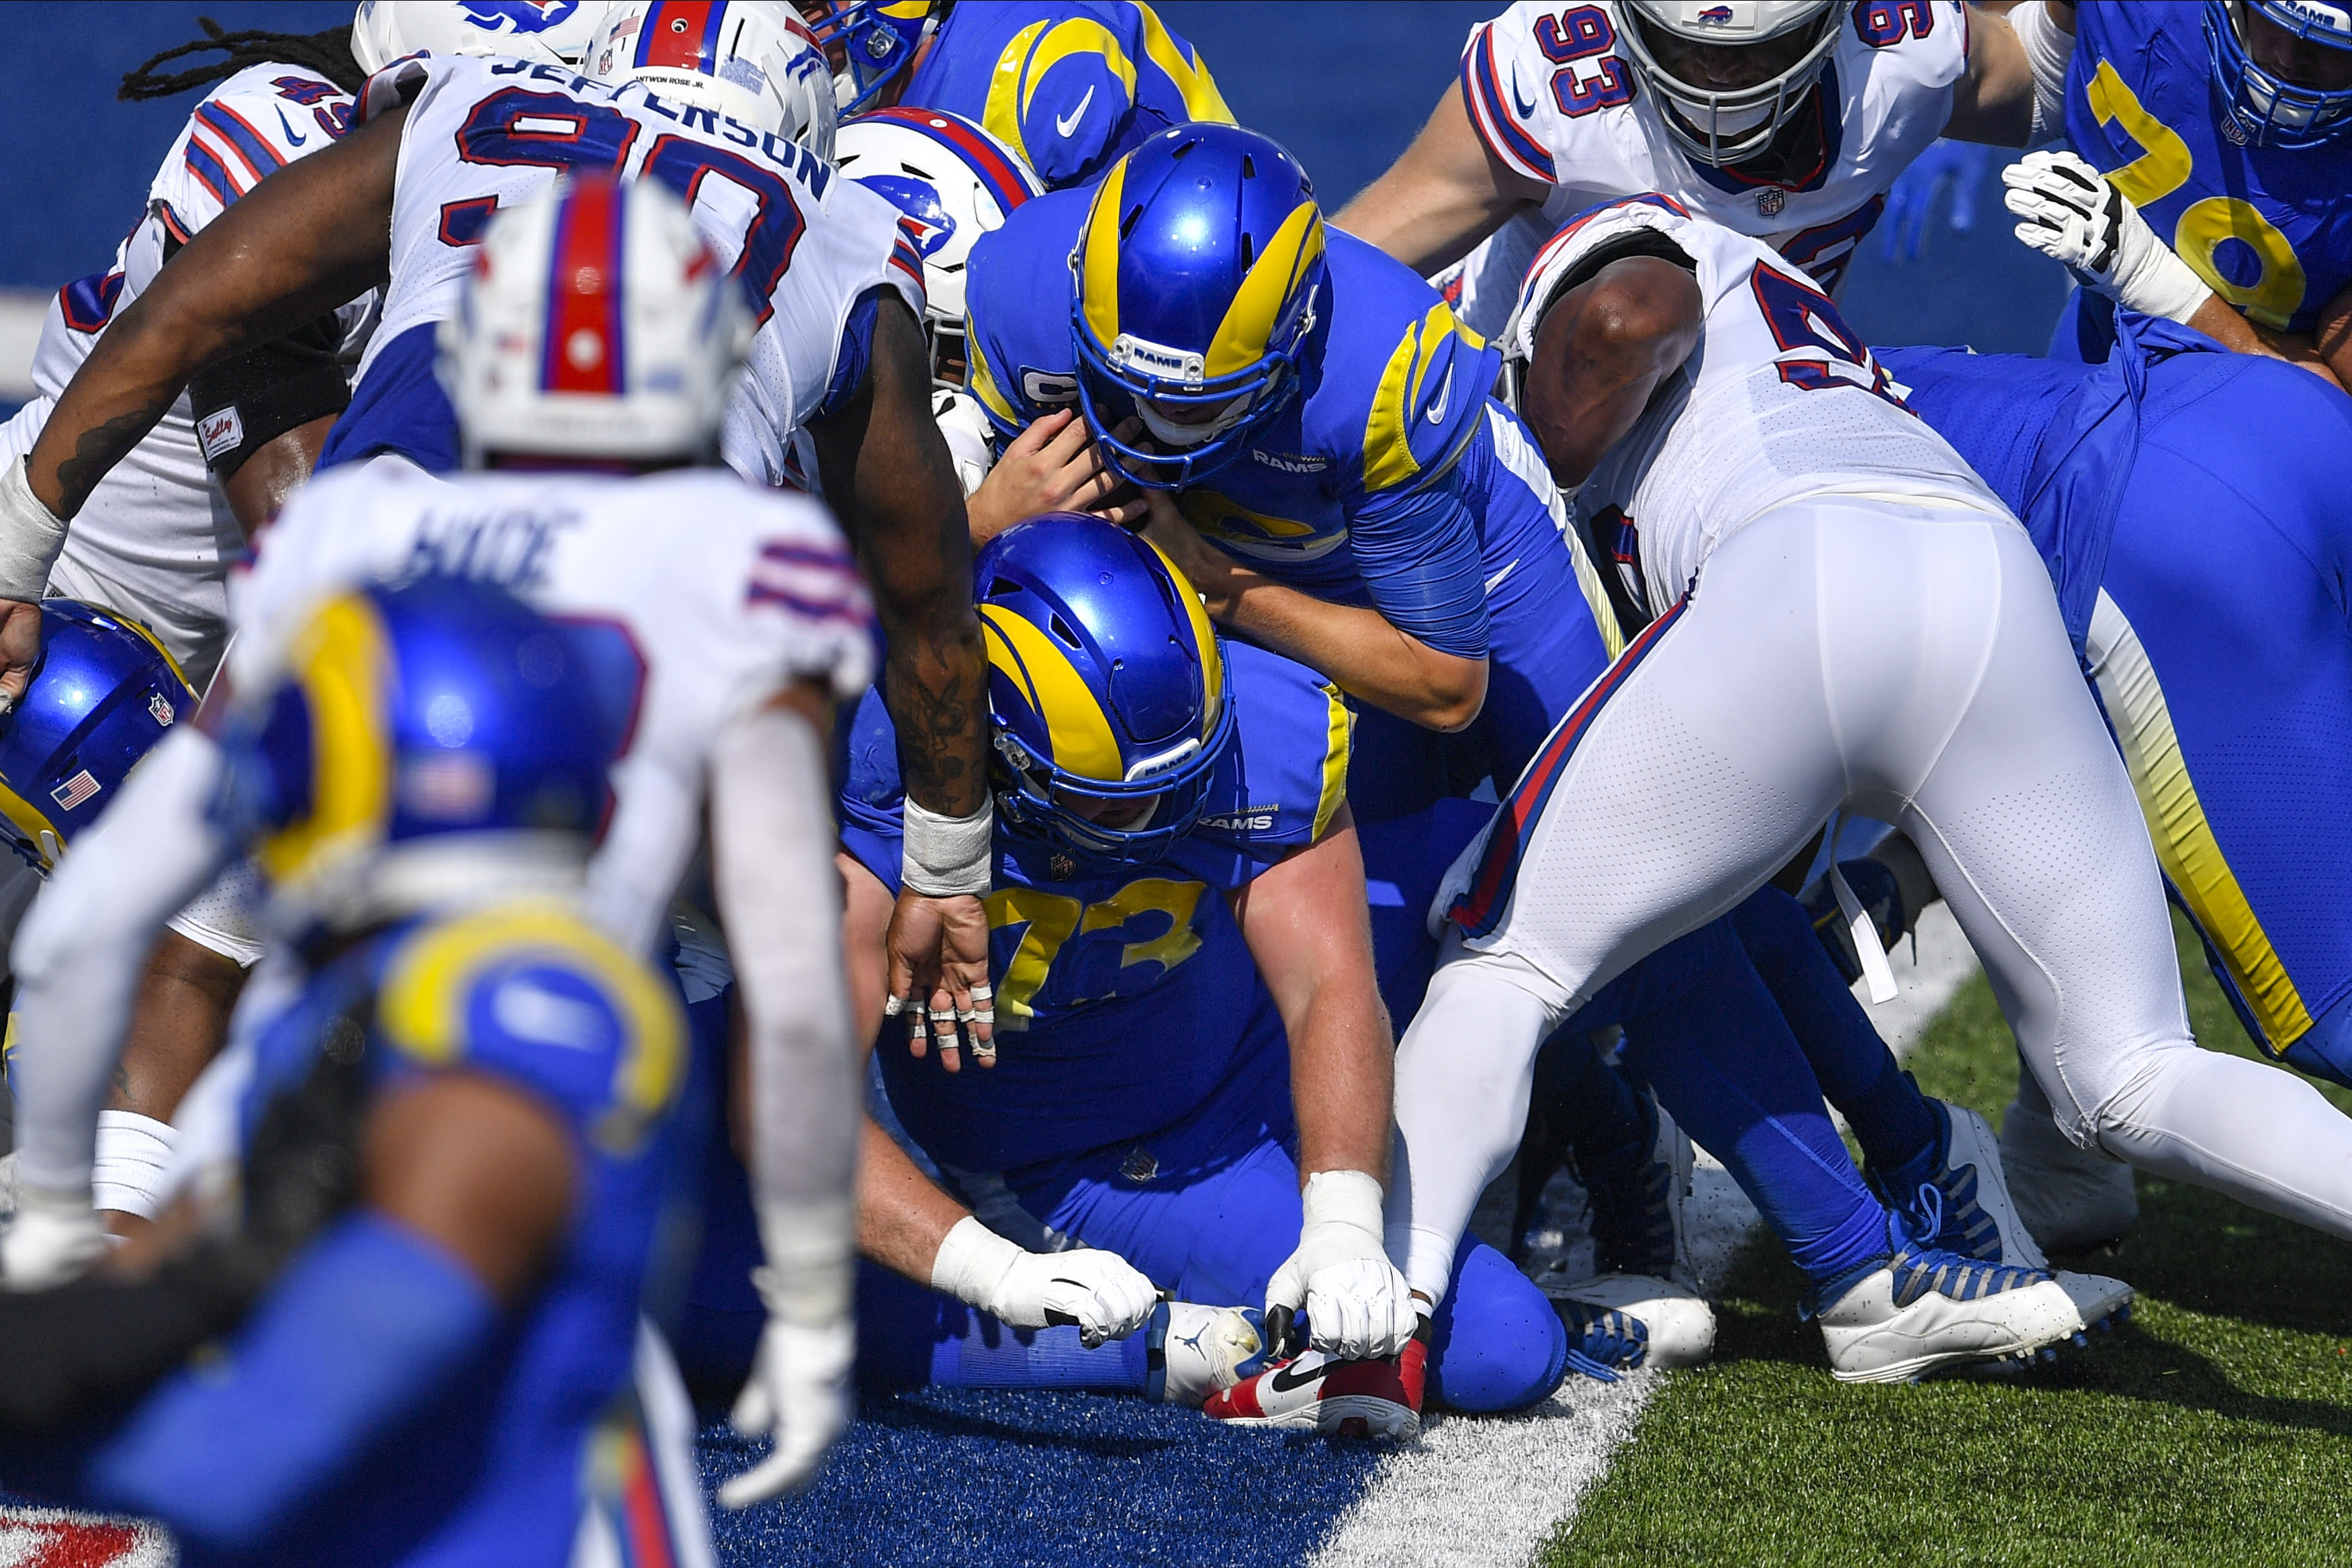 Los Angeles Rams quarterback Jared Goff, center, rushes for a touchdown during the second half of an NFL football game against the Buffalo Bills Sunday, Sept. 27, 2020, in Orchard Park, N.Y. (AP Photo/Adrian Kraus)